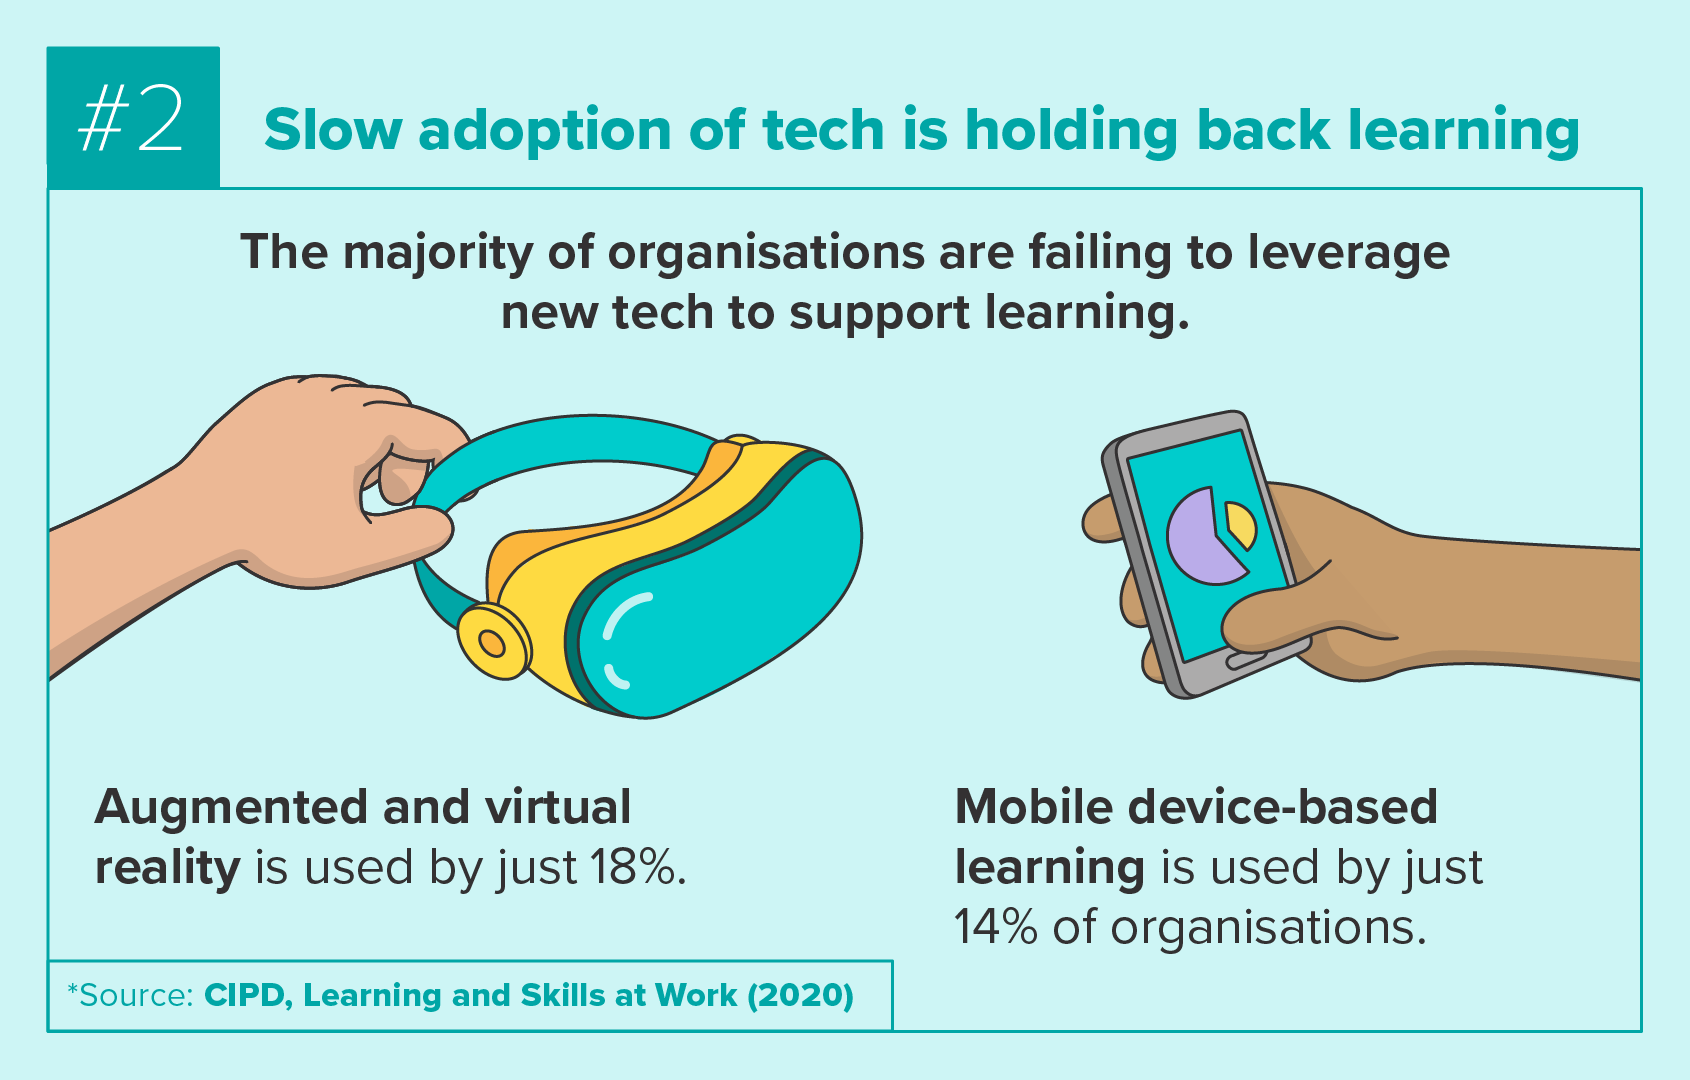 Slow adoption of tech is holding back learning